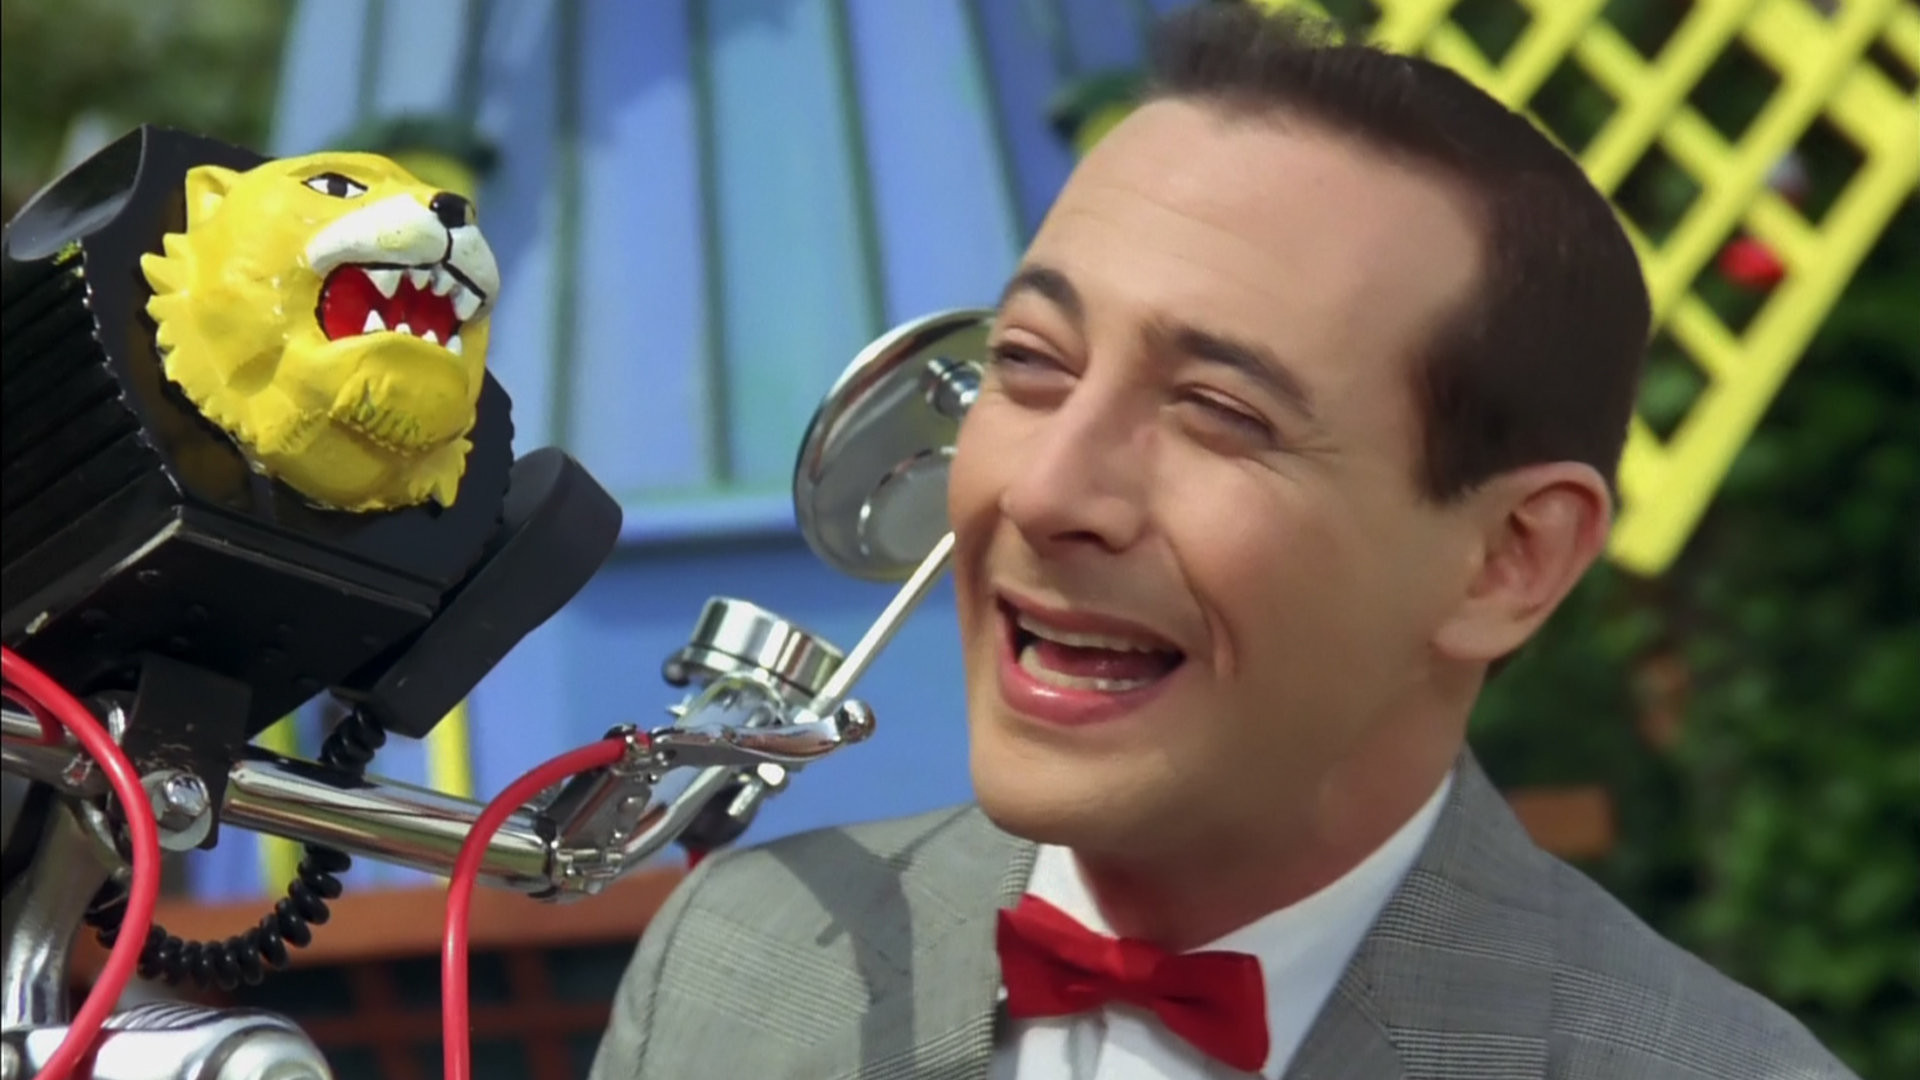 ll be honest, this little lion on the front of Pee-wee's bike ...